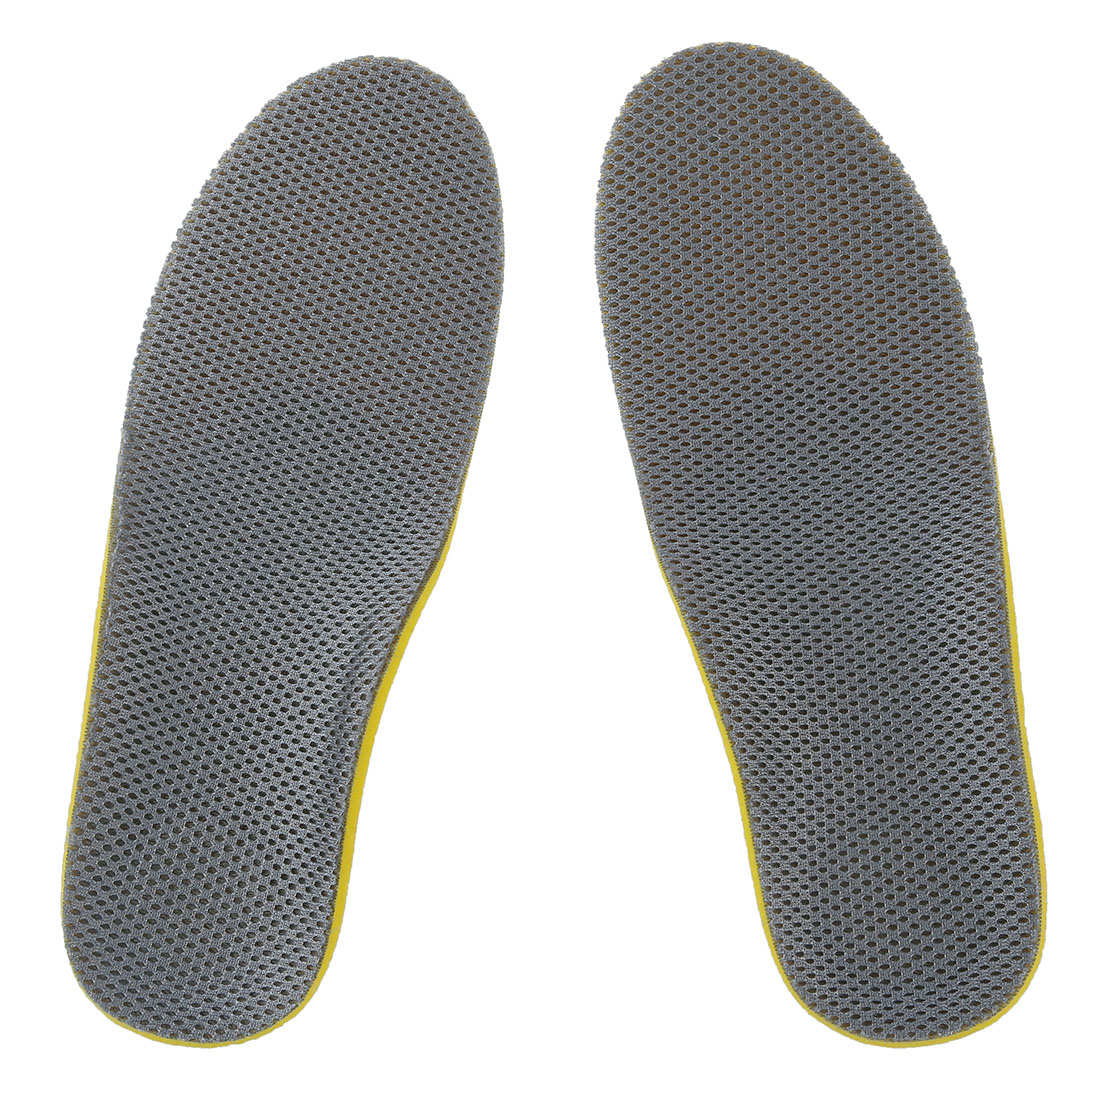 Comfortable Orthotic Shoes Insoles Inserts High Arch Support Pad